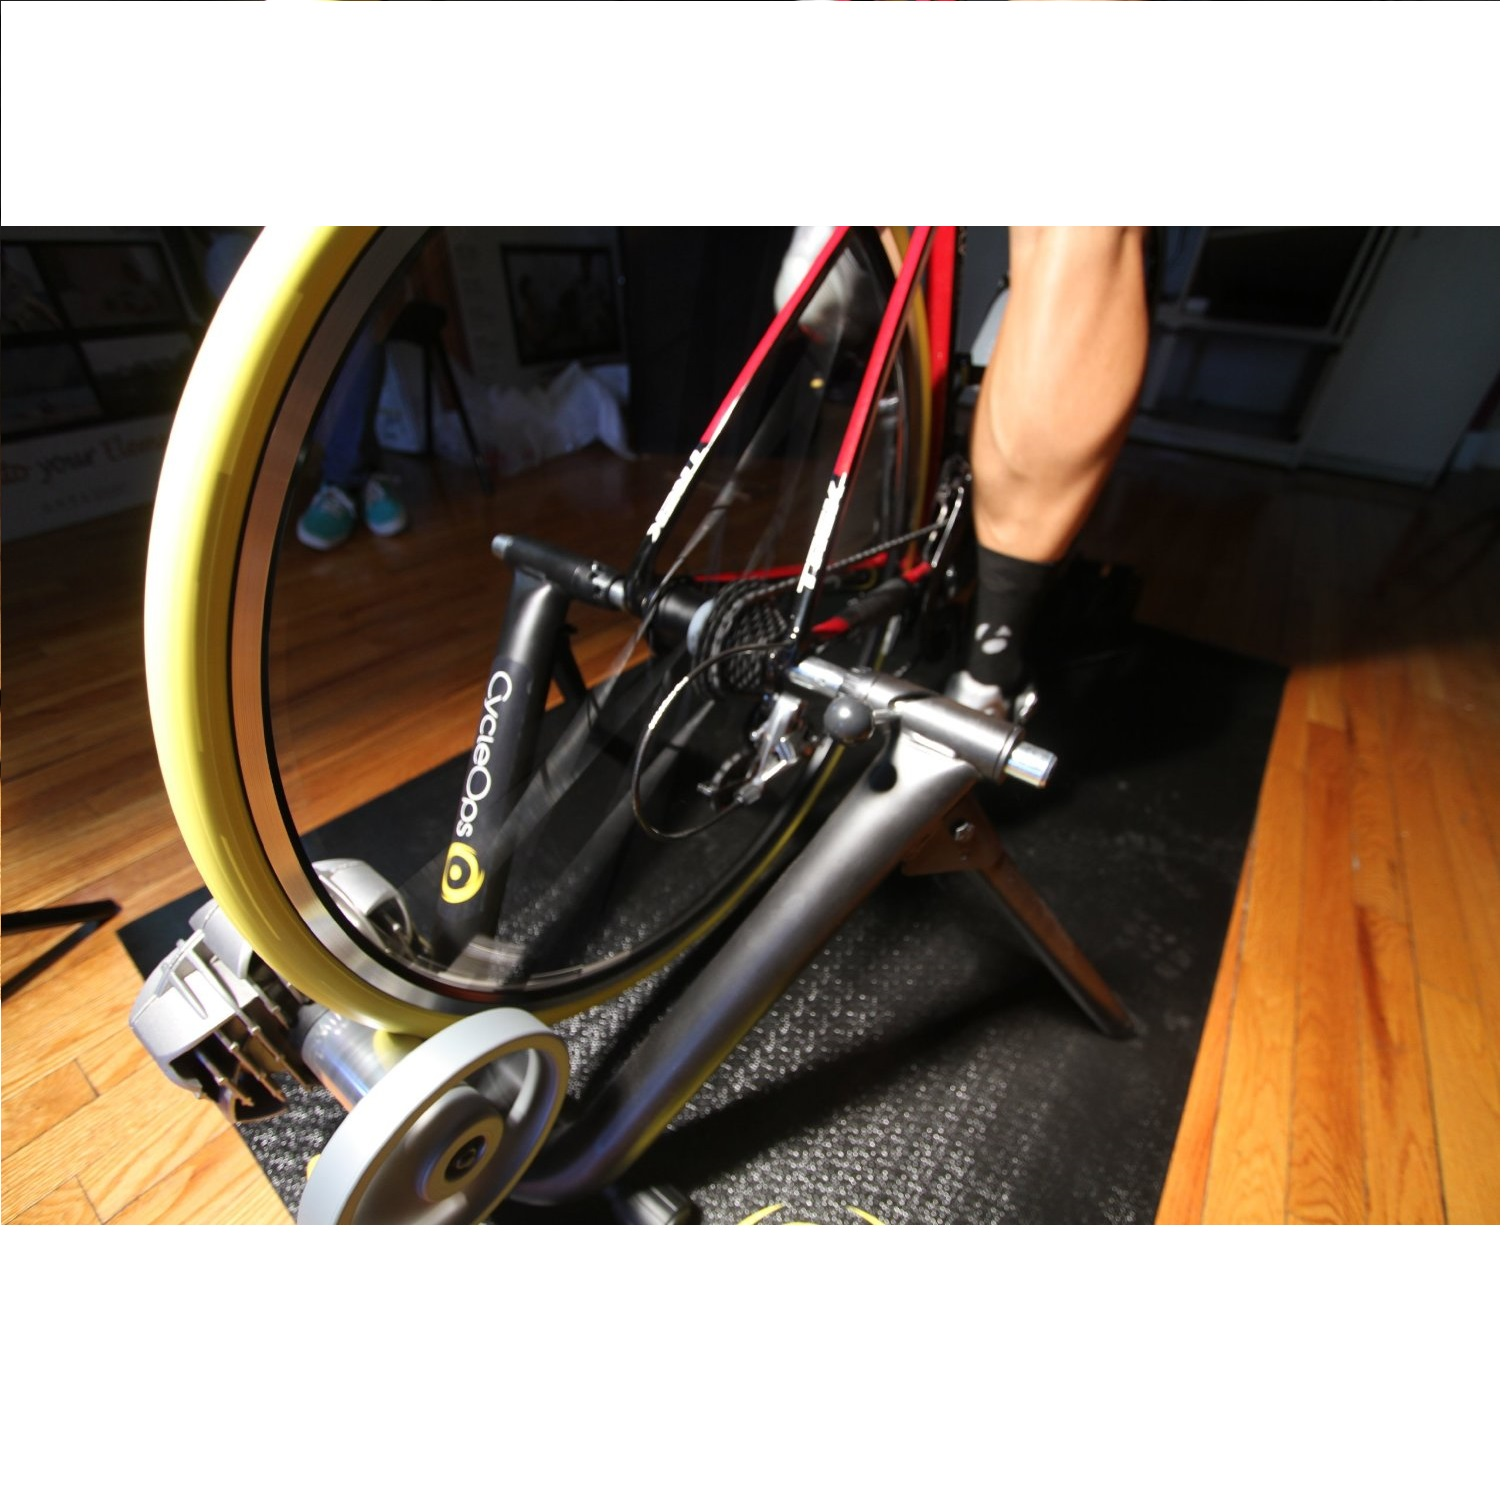 CycleOps Fluid2 Turbo Trainer